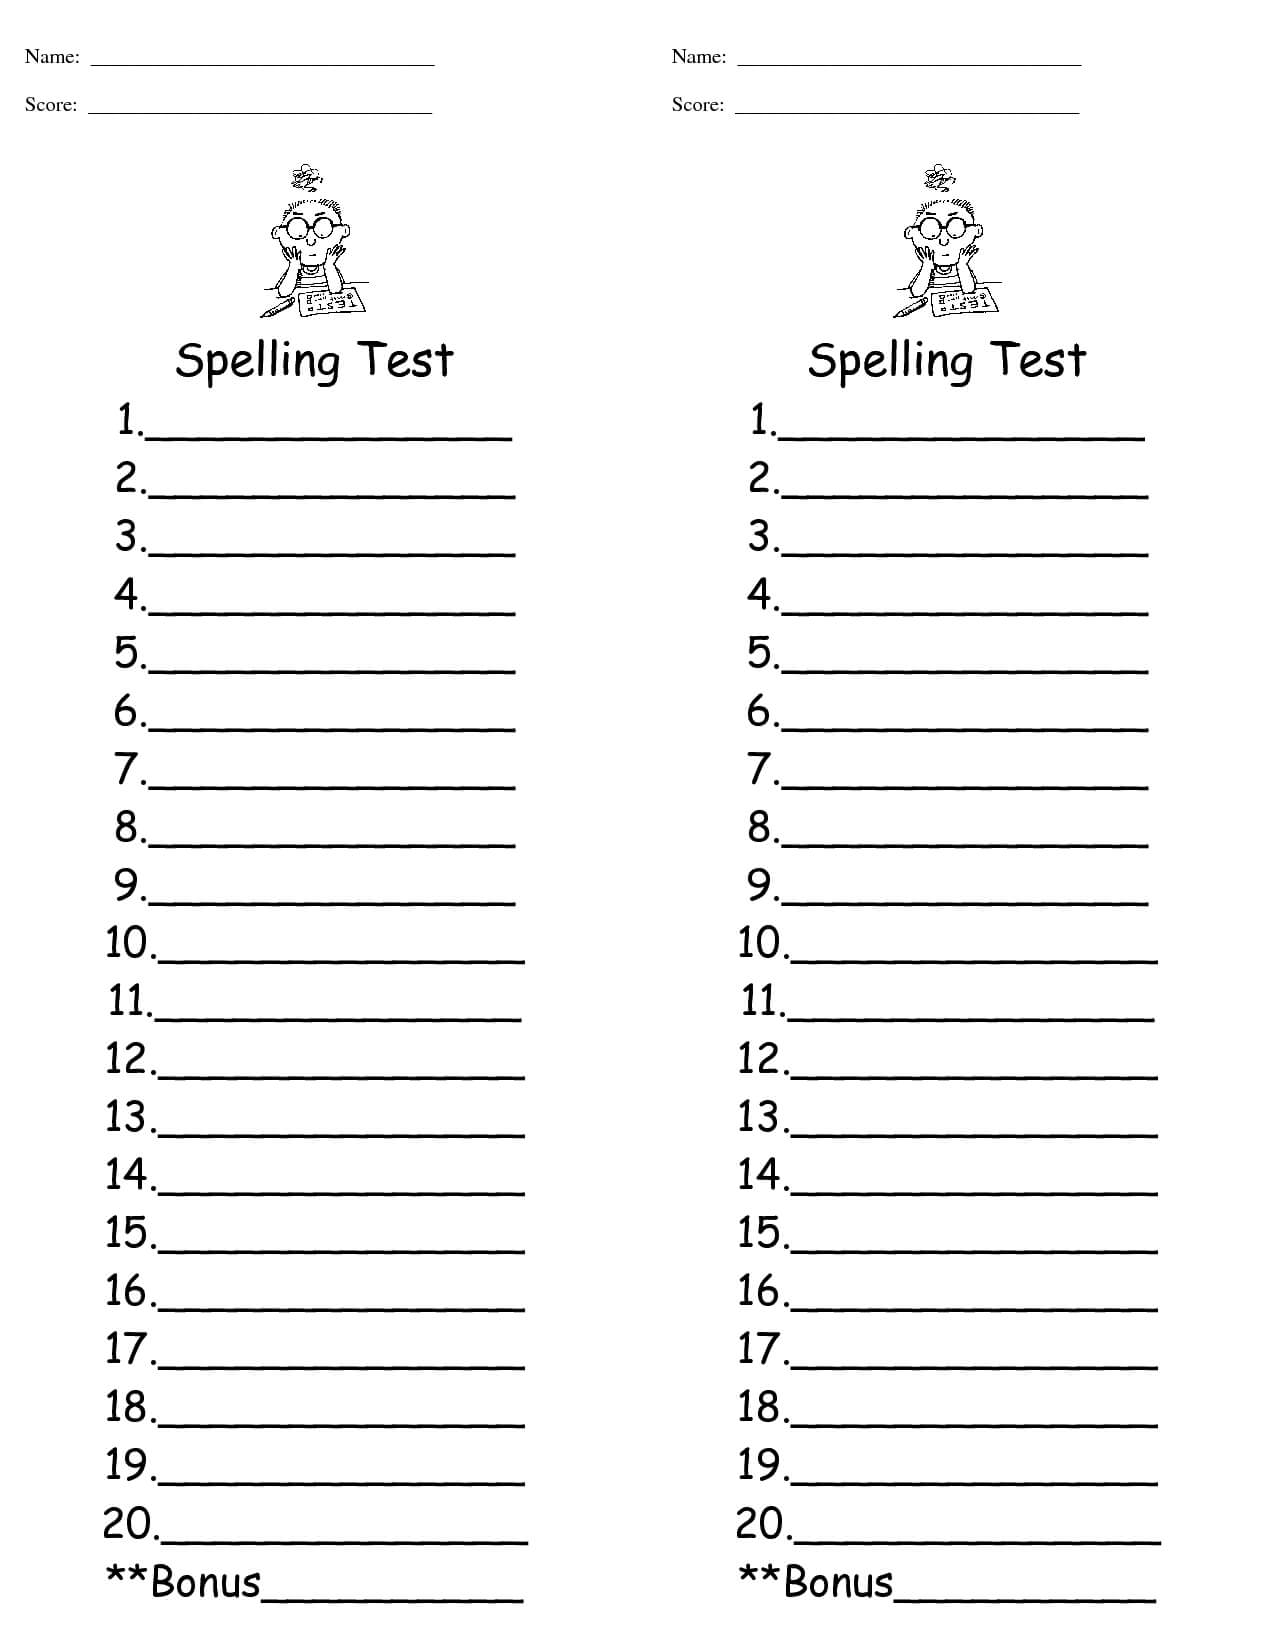 29 Images Of Spelling Words Test Template 9 | Jackmonster In Test Template For Word